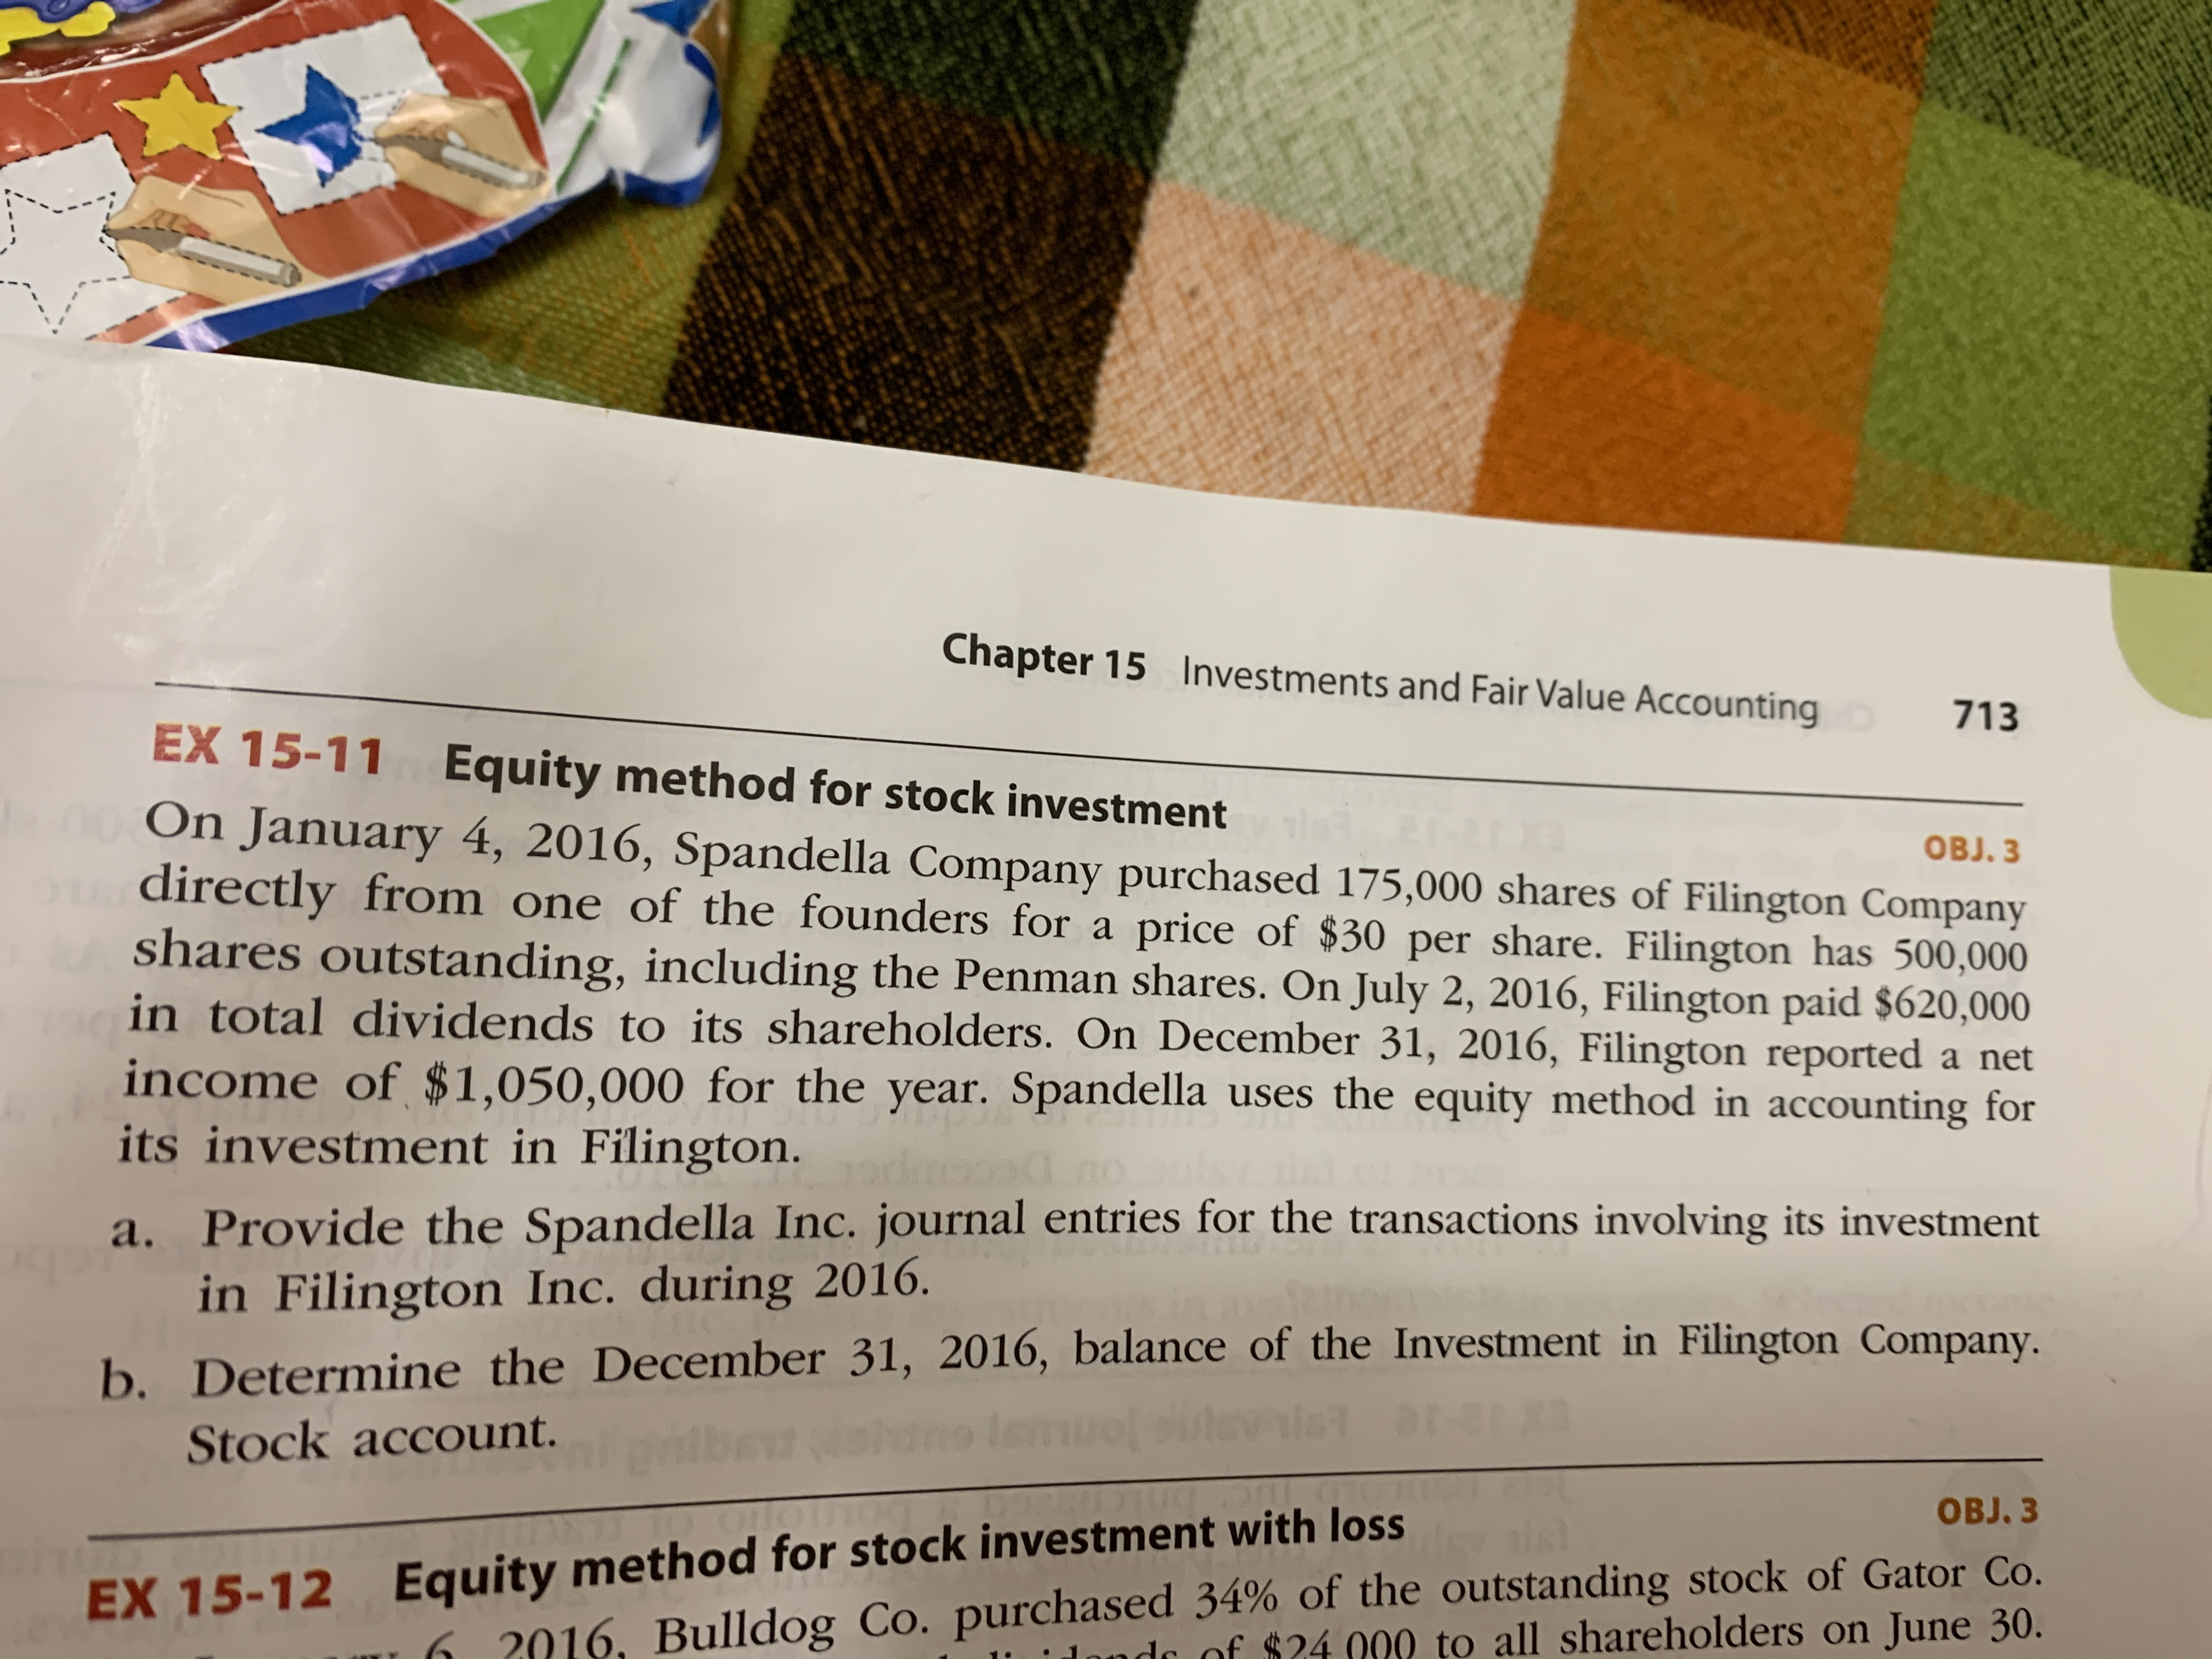 Chapter 15 Investments and Fair Value Accounting 713 EX 15-11 Equity method for stock investment 0On January 4, 2016, Spandella Company purchased 175,000 shares of Filington Company OBJ. 3 directly from one of the founders for a price of $30 per share. Filington has 500,000 shares outstanding, including the Penman shares. On July 2, 2016, Filington paid $620,000 in total dividends to its shareholders. On December 31, 2016, Filington reported a net income of $1,050,000 for the year. Spandella uses the equity method in accounting for its investment in Filington. a. Provide the Spandella Inc. journal entries for the transactions involving its investment in Filington Inc. during 2016. b.Determine the December 31, 2016, balance of the Investment in Filington Company. Stock account. OBJ.3 Bulldog Co. purchased 34% of the outstanding stock of Gator Co. all shareholders on June 30. EX 15-12 Equity method for stock investment with loss